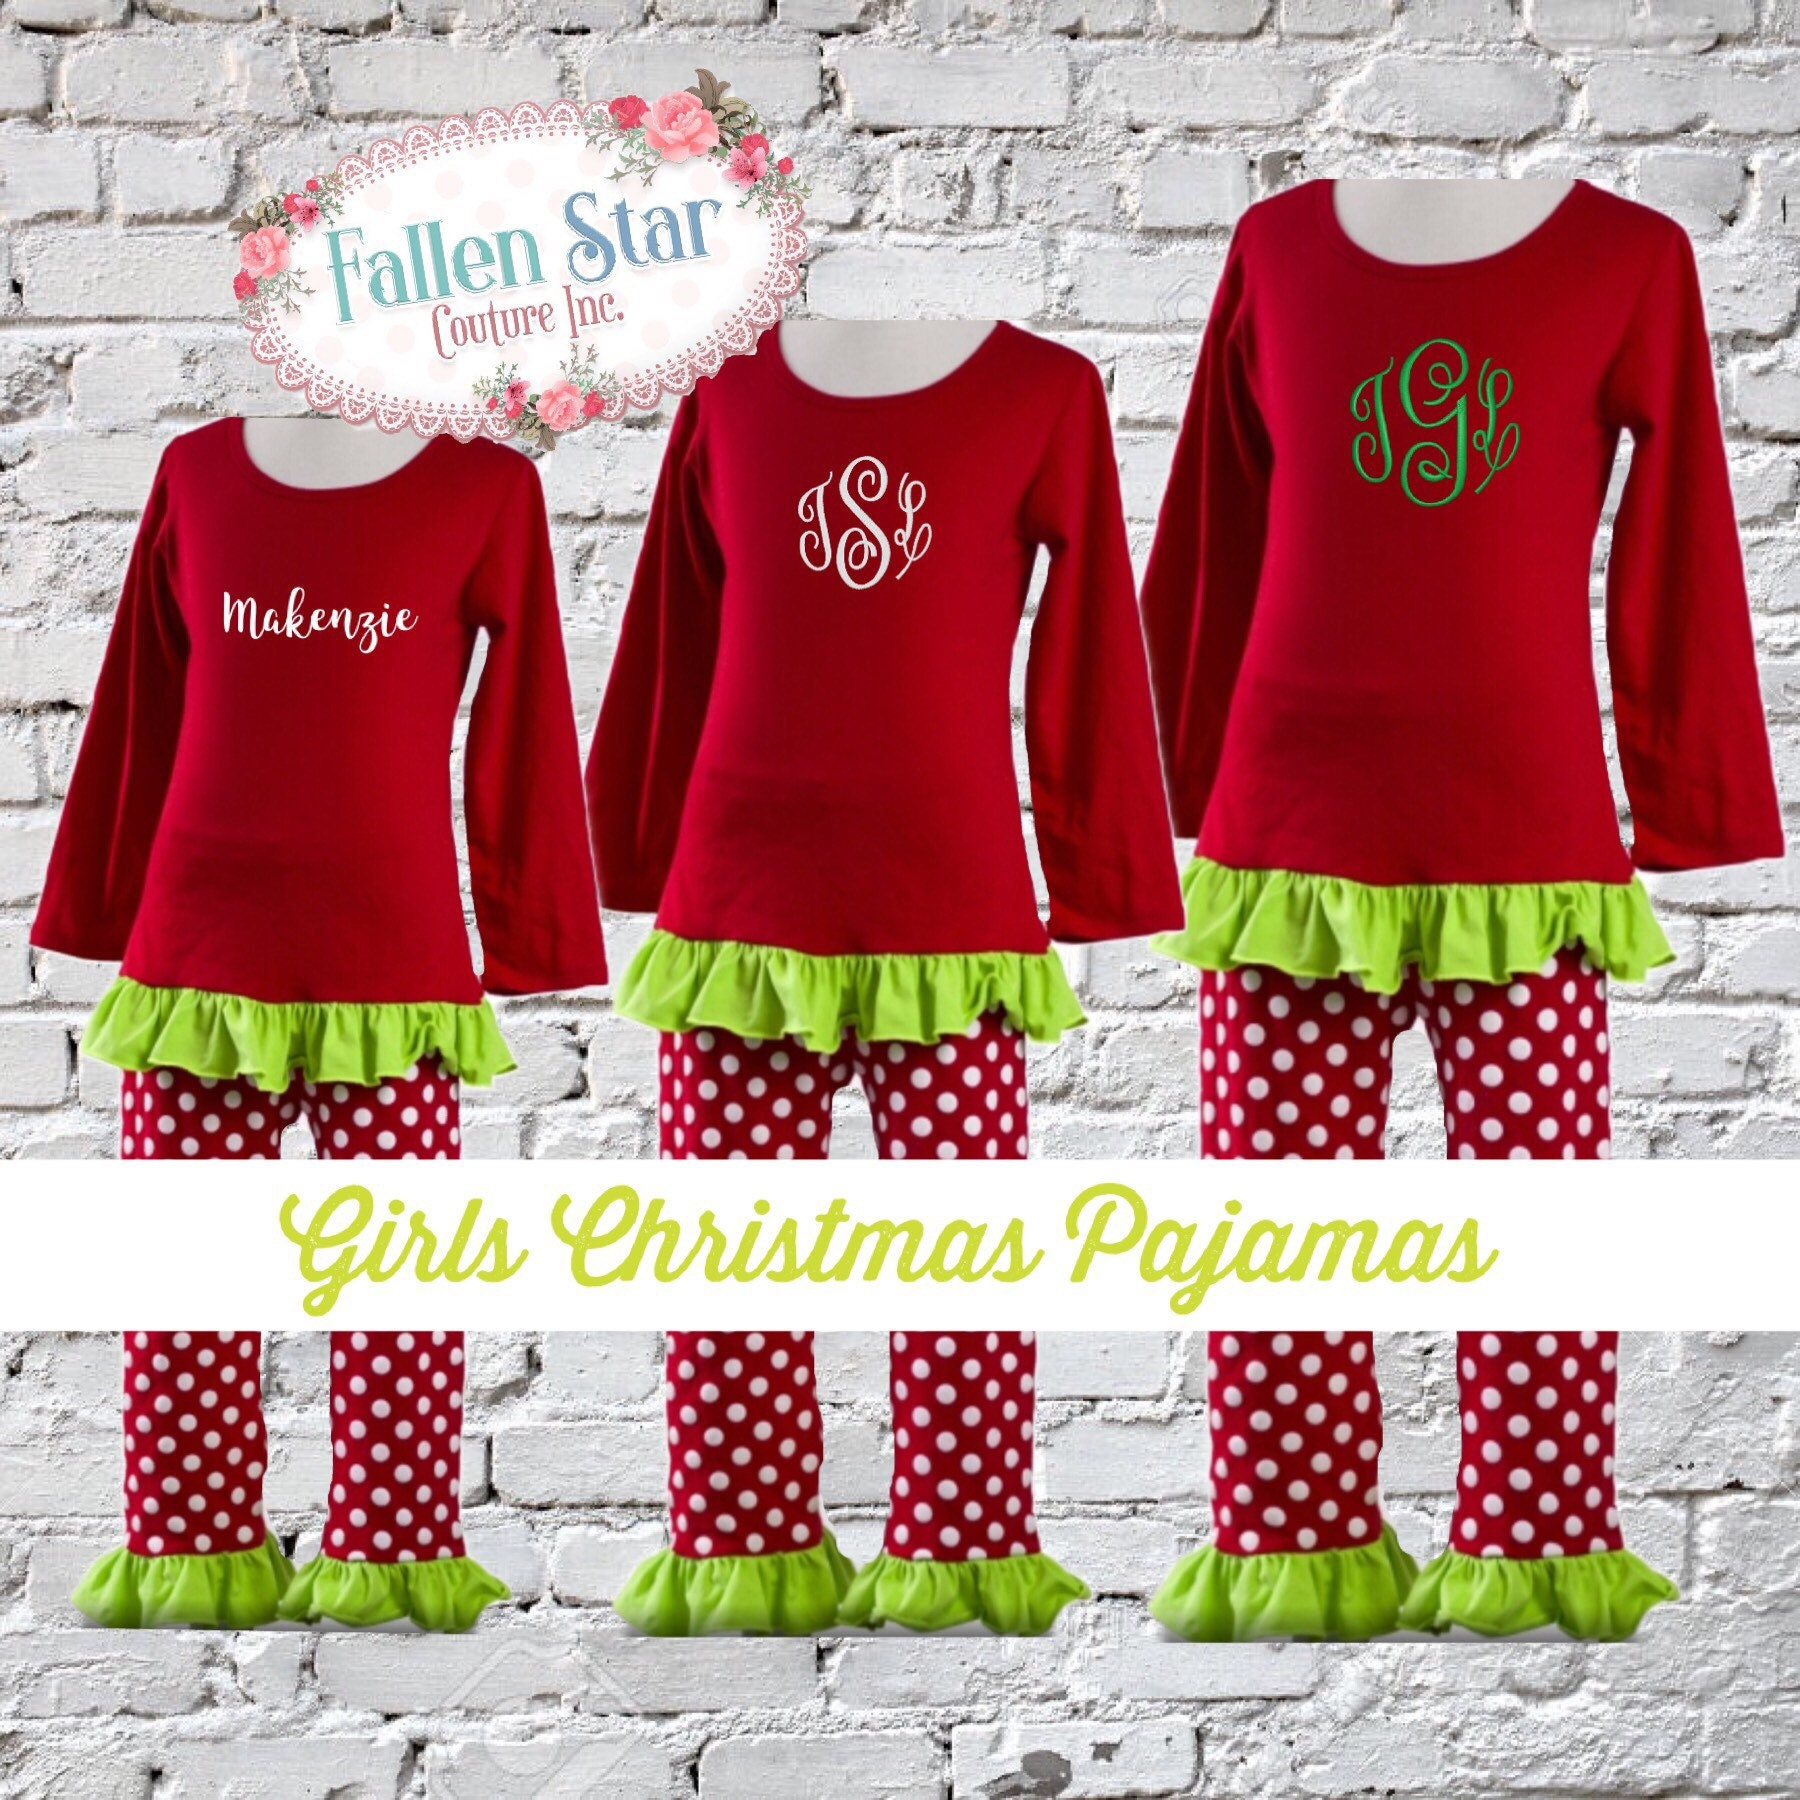 Kids Christmas Pajamas.Girls Personalized Christmas Pajamas Kids Christmas